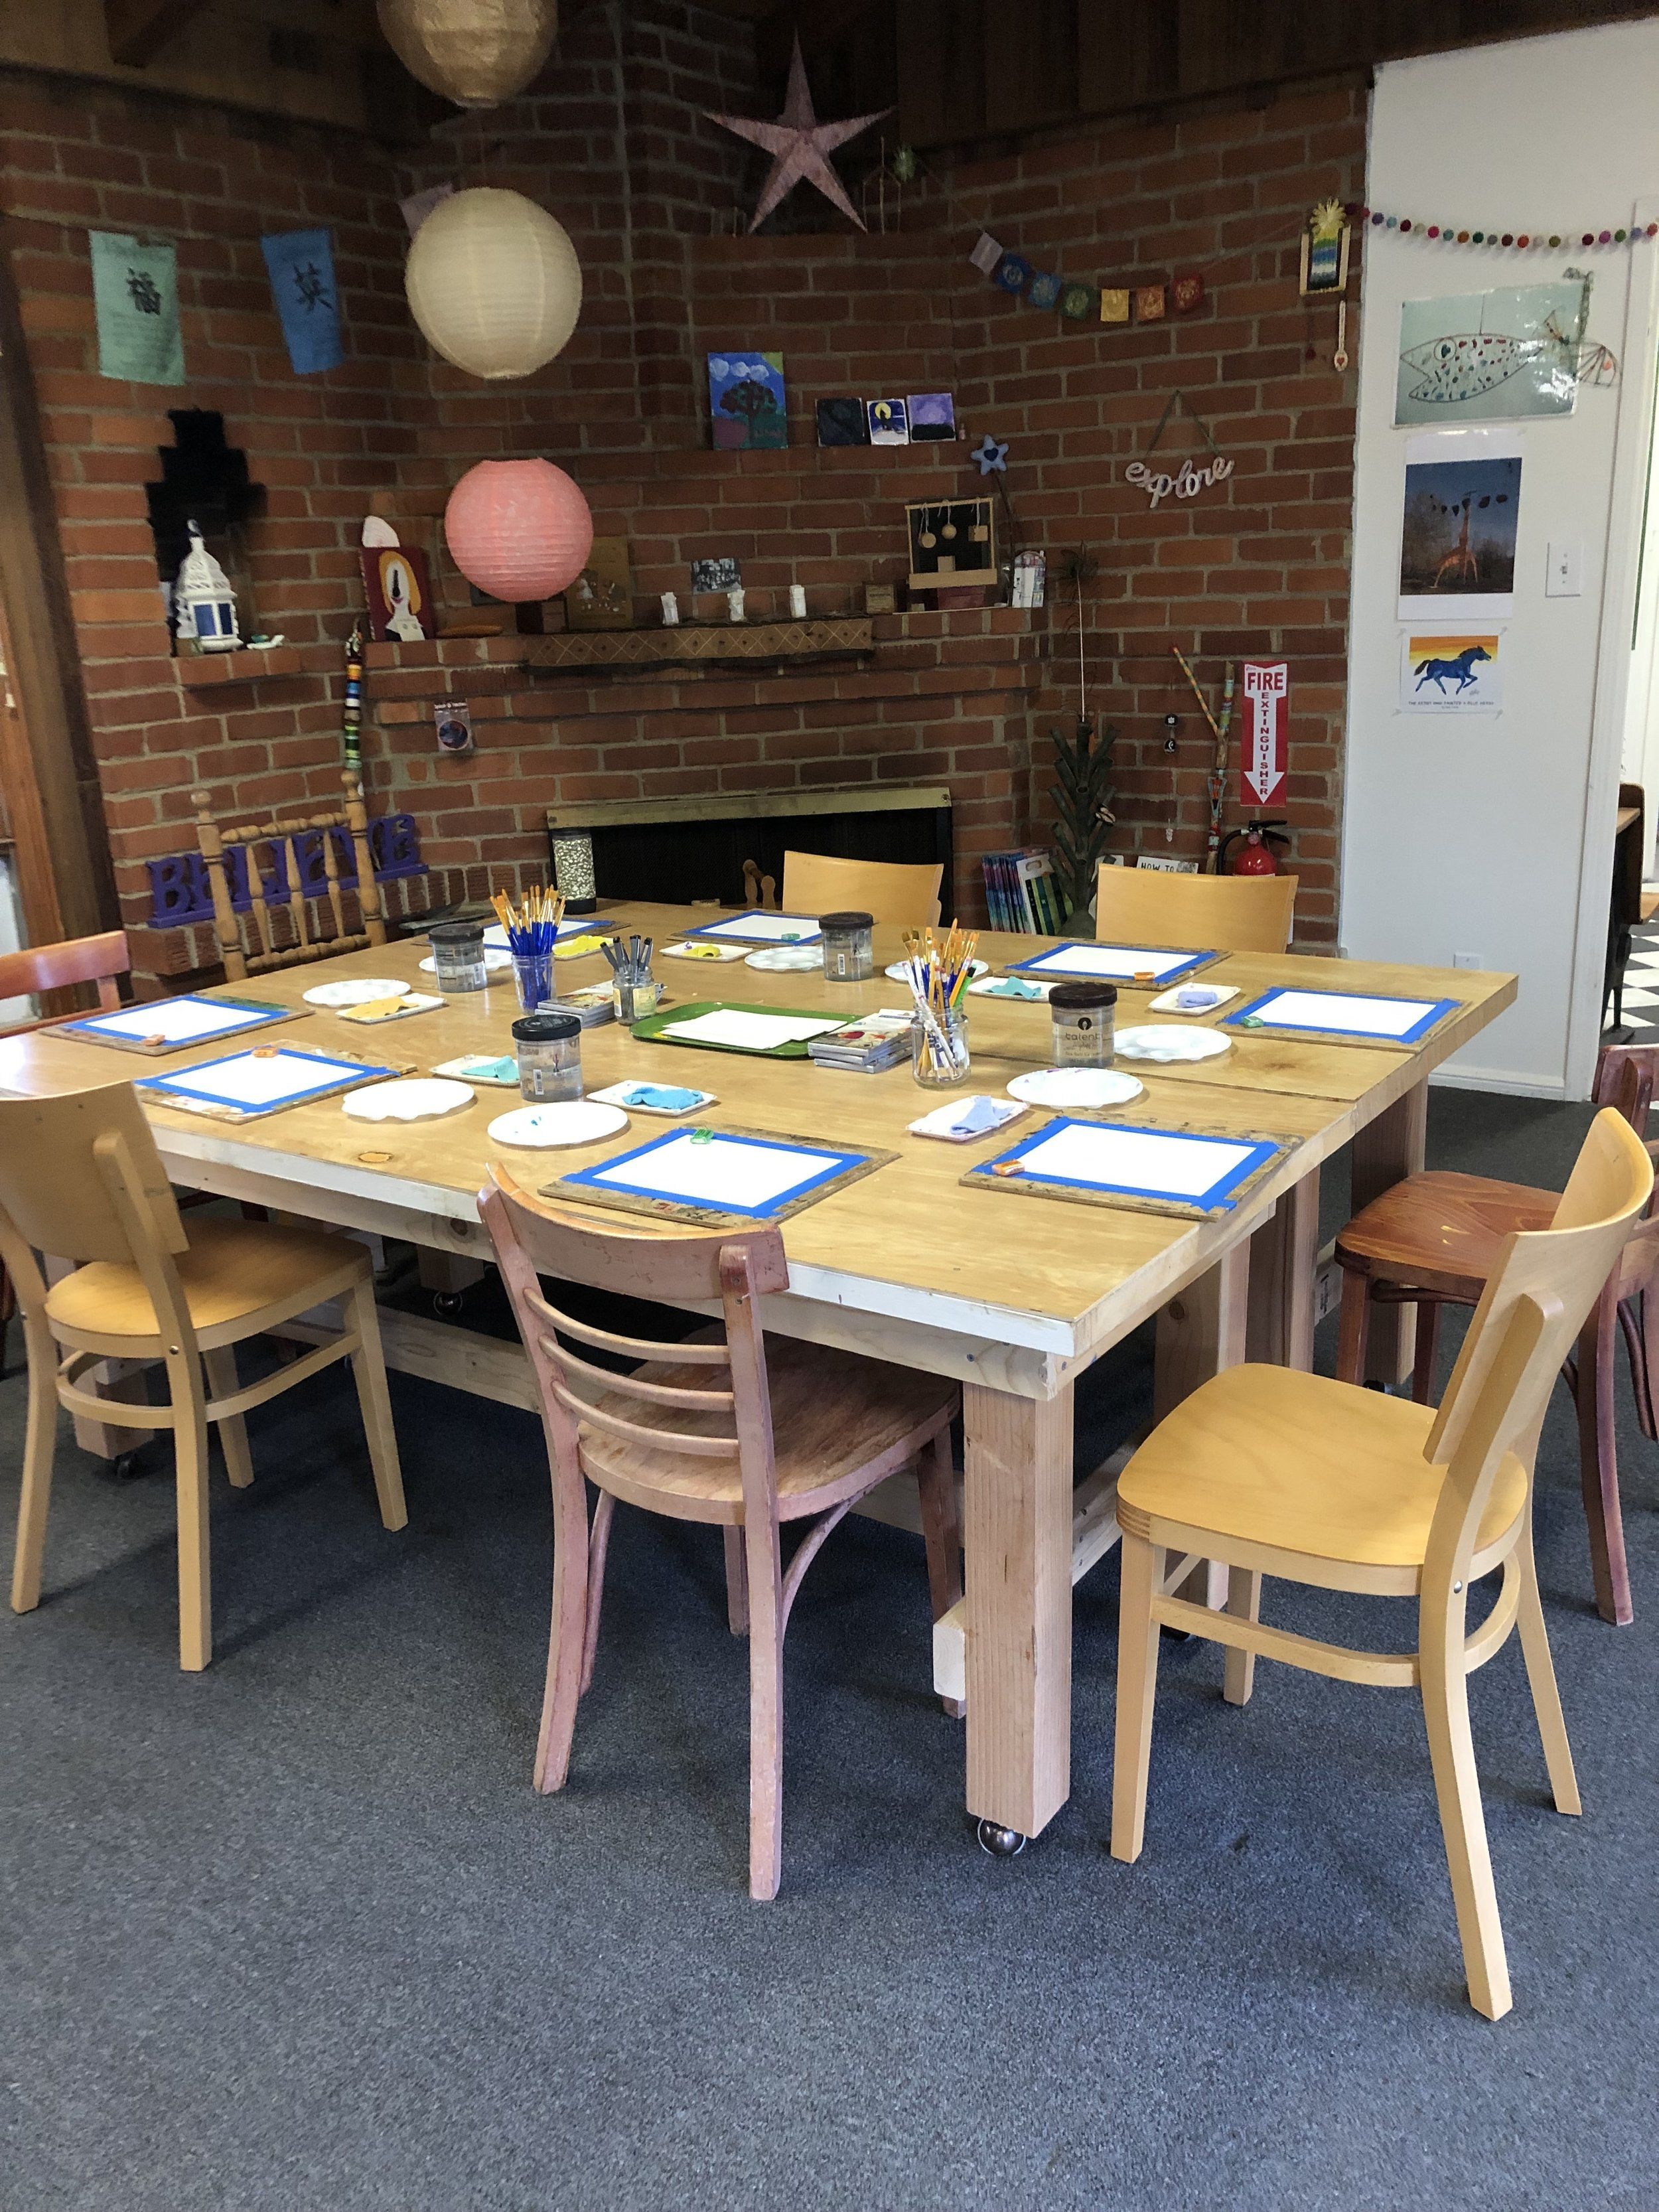 Your private party can be a minimum of 5 guest to a maximum of 15. Prices range from $25.00-$40.00 per person for an hour and a half. Depending on the size of the group as well as activities provided, please contact us to get a complete quote.